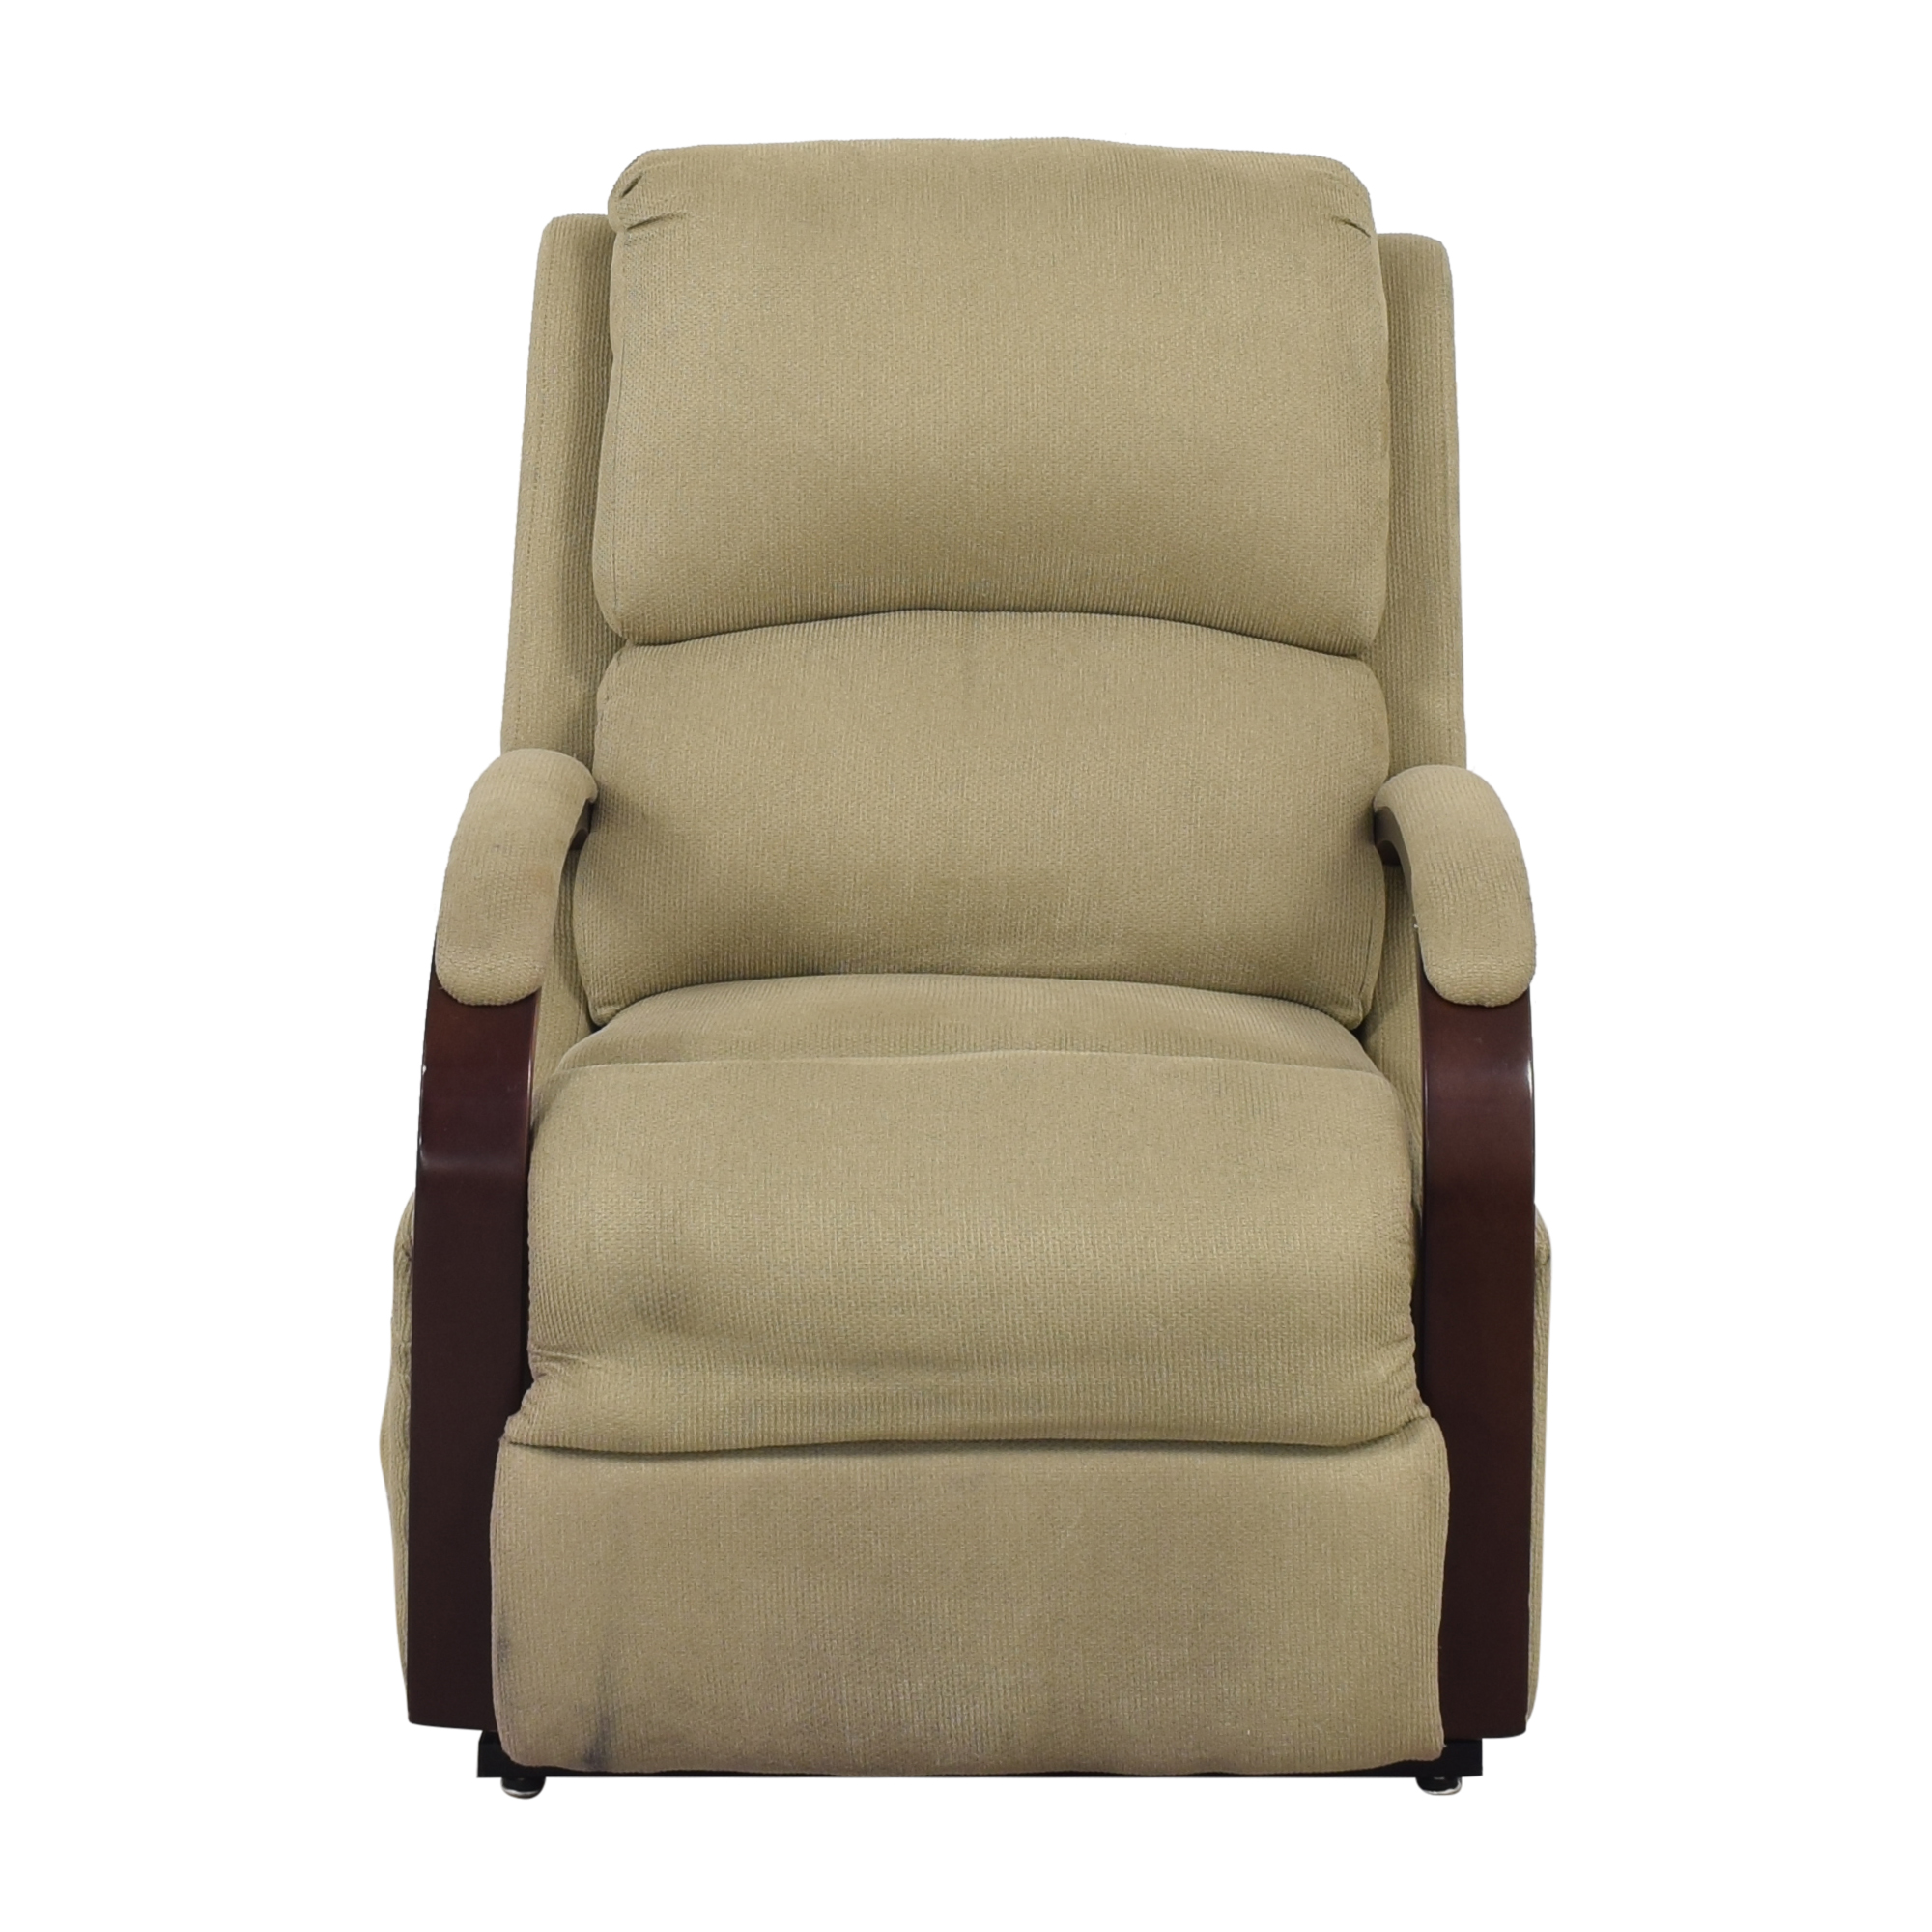 Macy's Power Lift Recliner Chair / Recliners